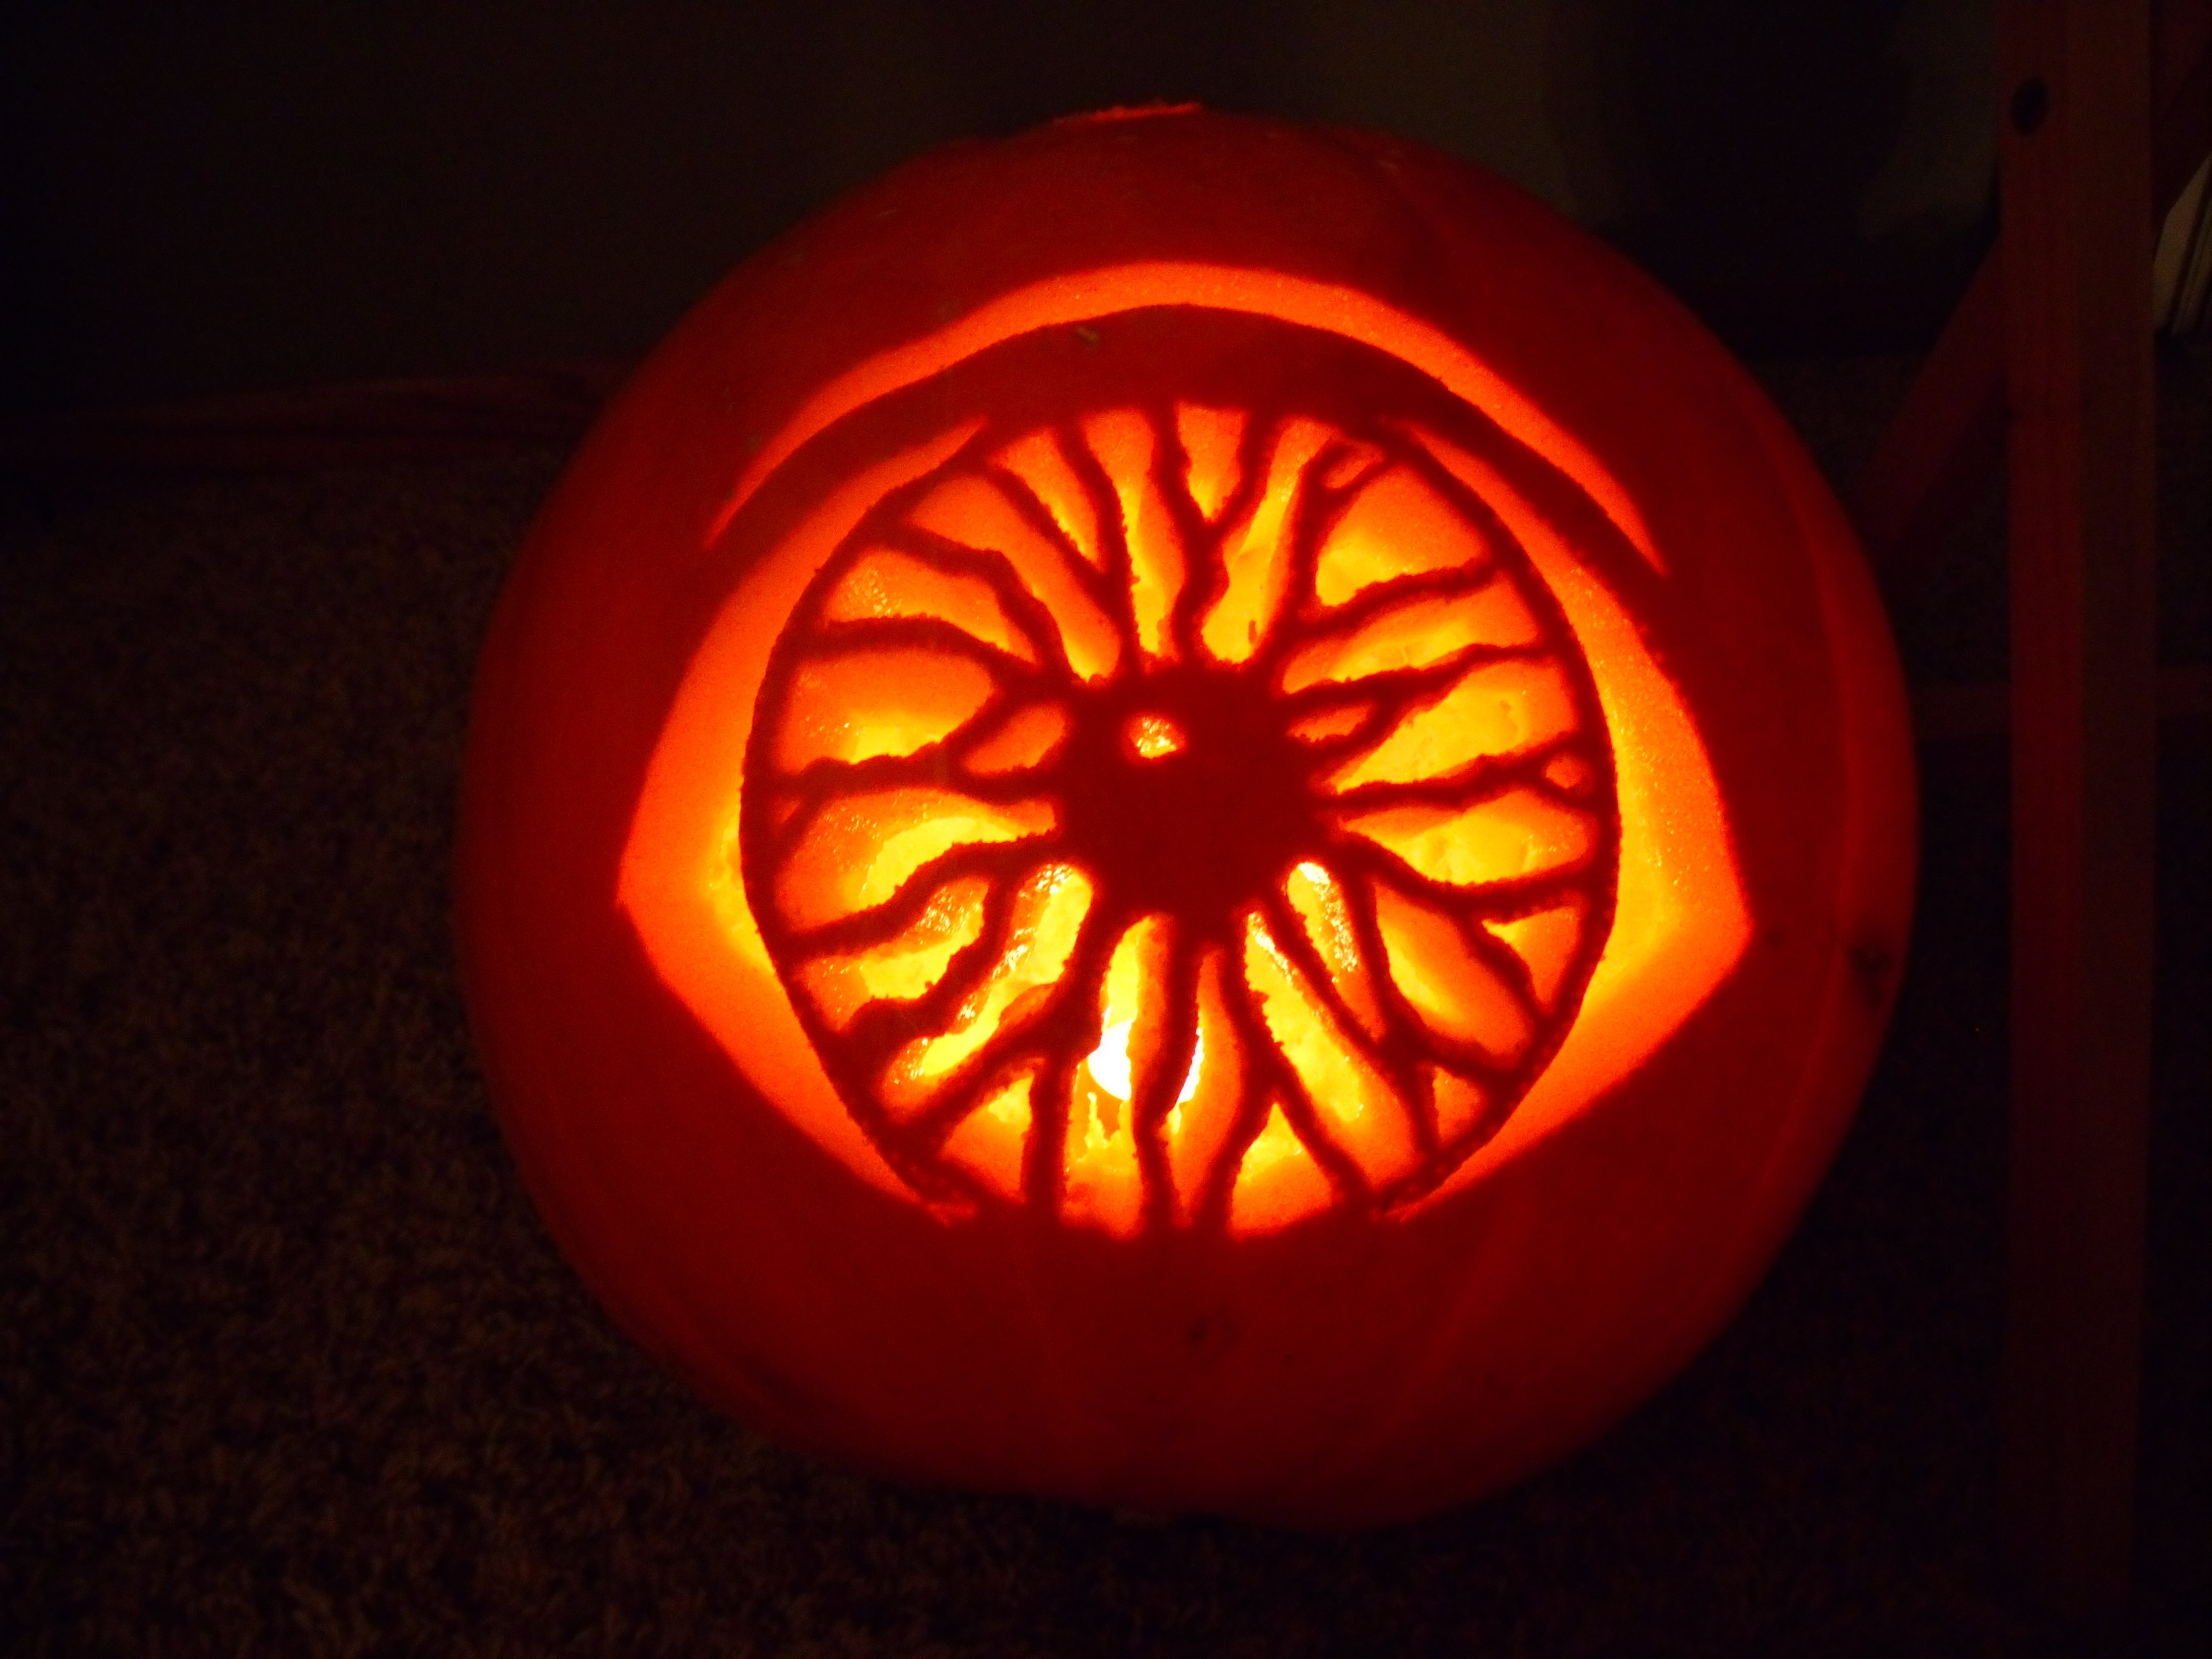 10 Most Recommended Cool Pumpkin Carving Ideas Easy fantastic awesome pumpkin carving ideas design decorating ideas easy 1 2020